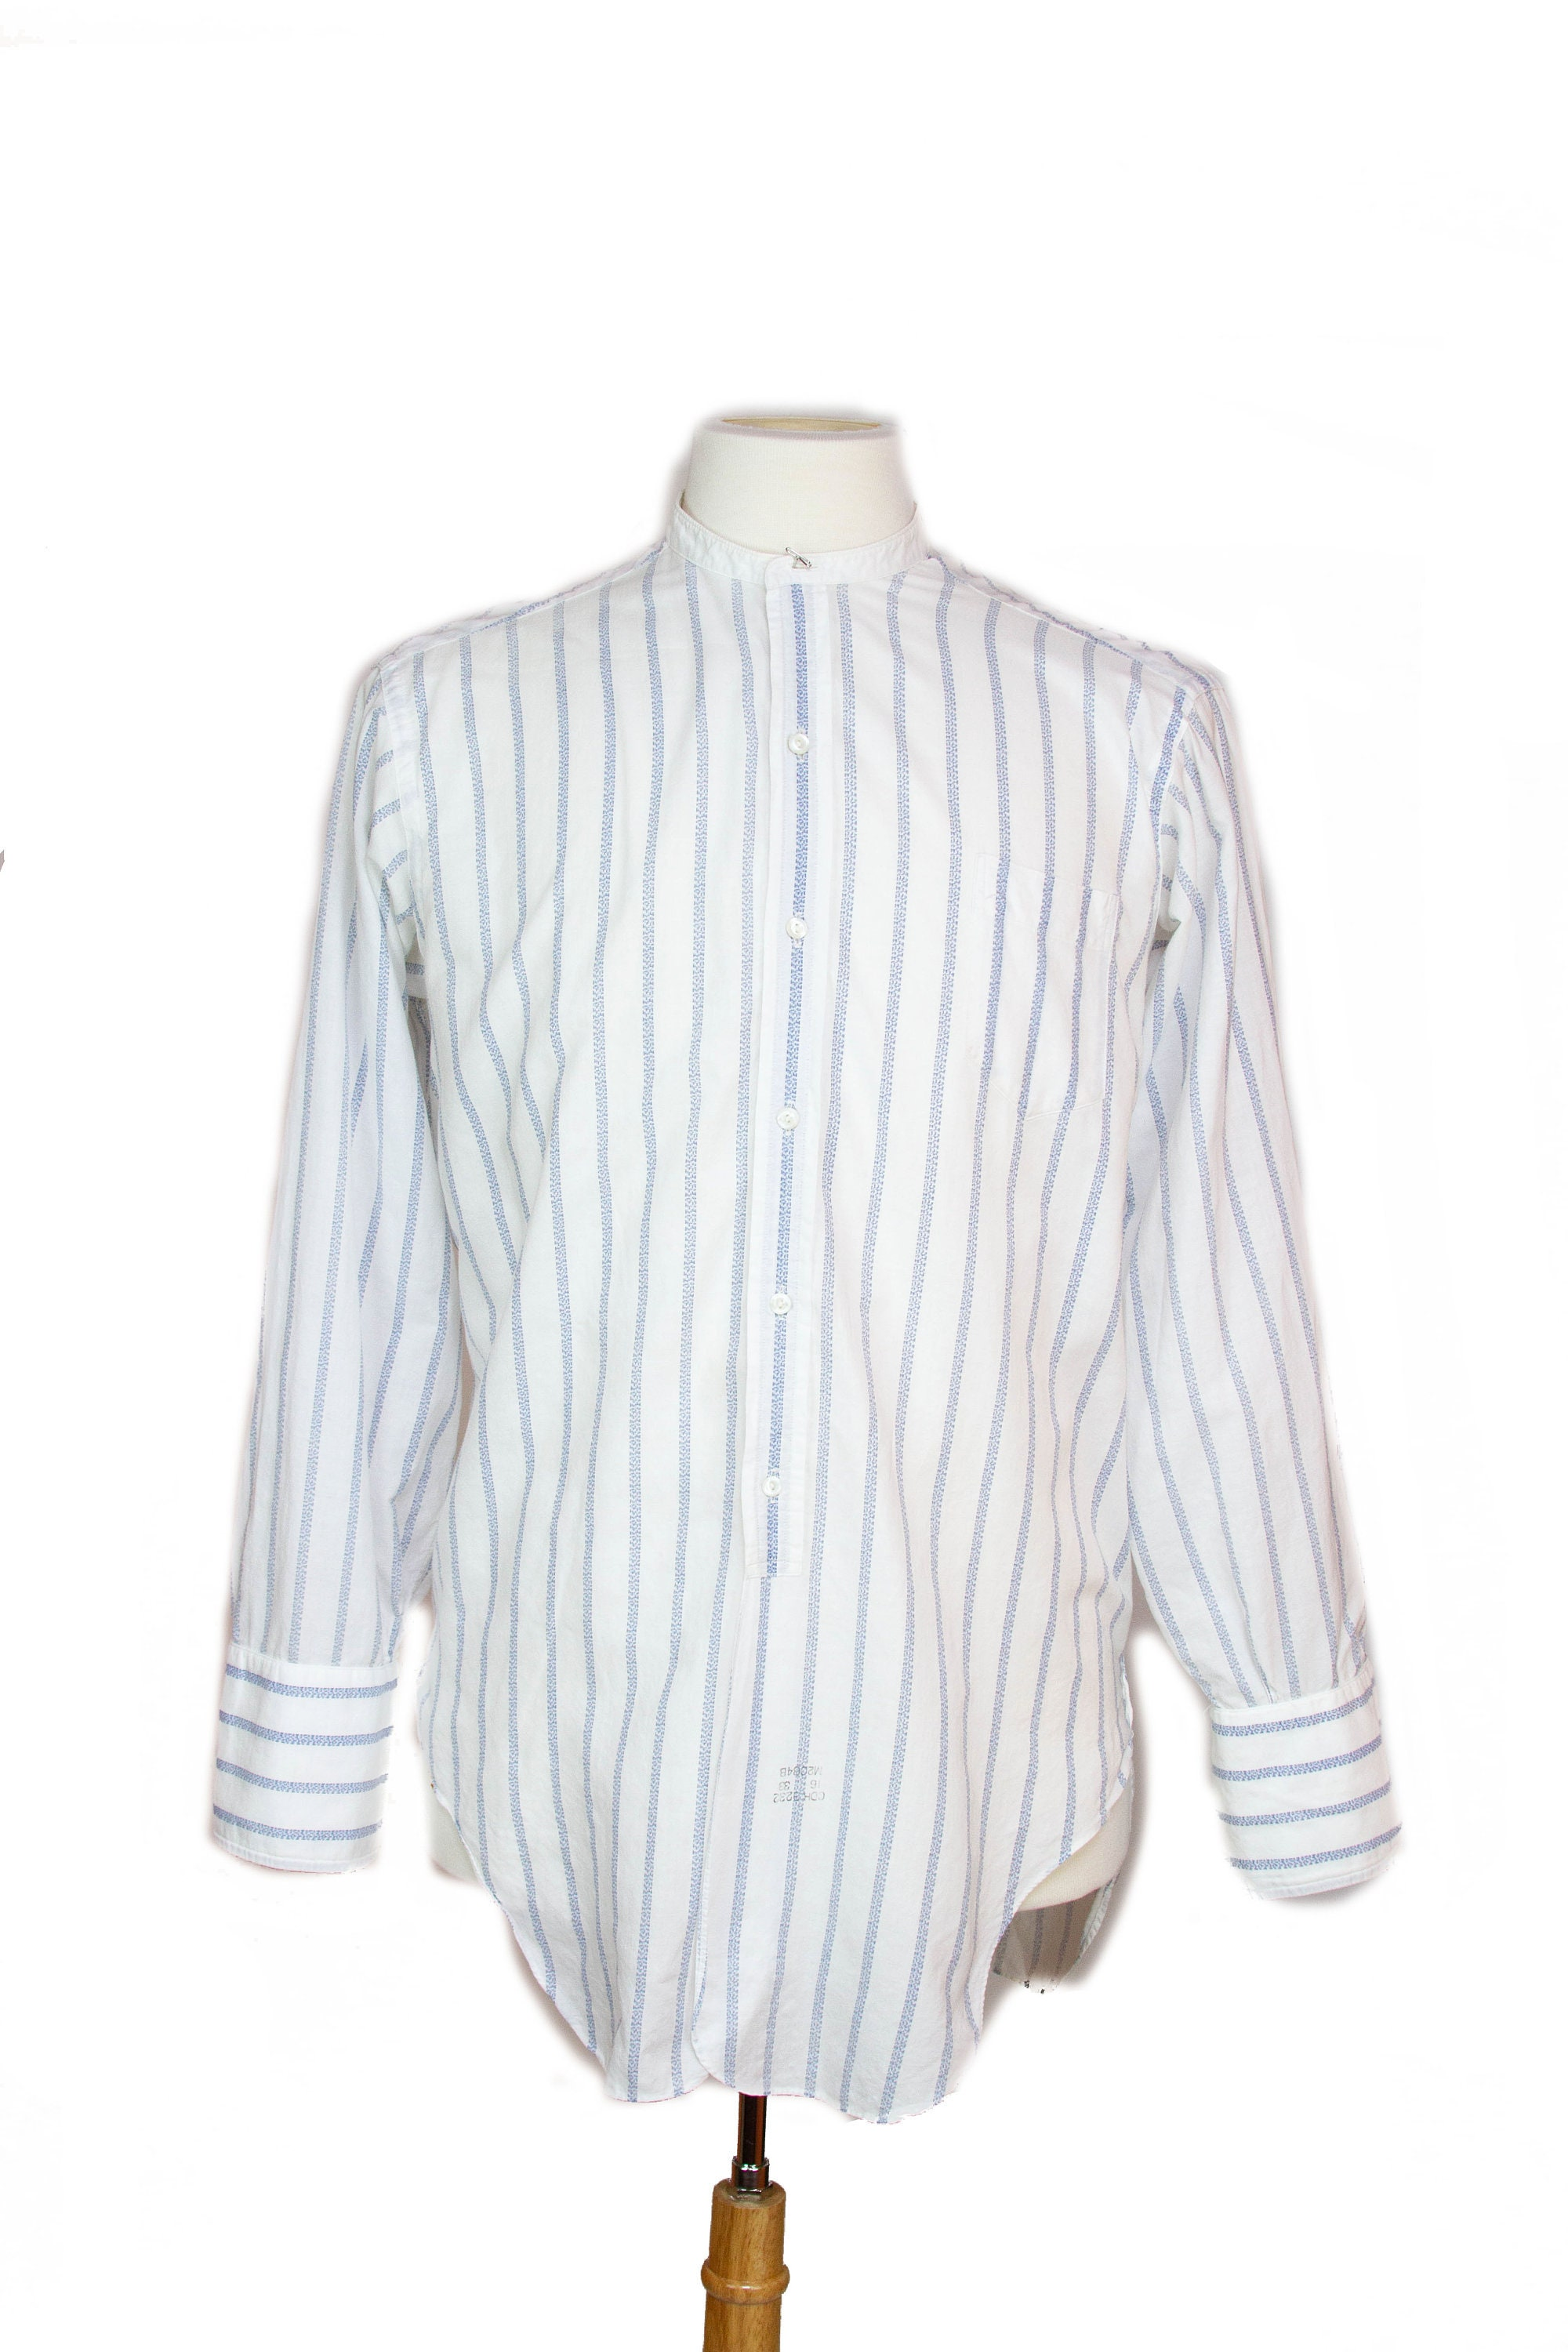 Men's 1920s Style Ties, Neck Ties & Bowties 1920S Mens Shirt  White With Blue Stripe Cotton Collarless Button Down $23.75 AT vintagedancer.com